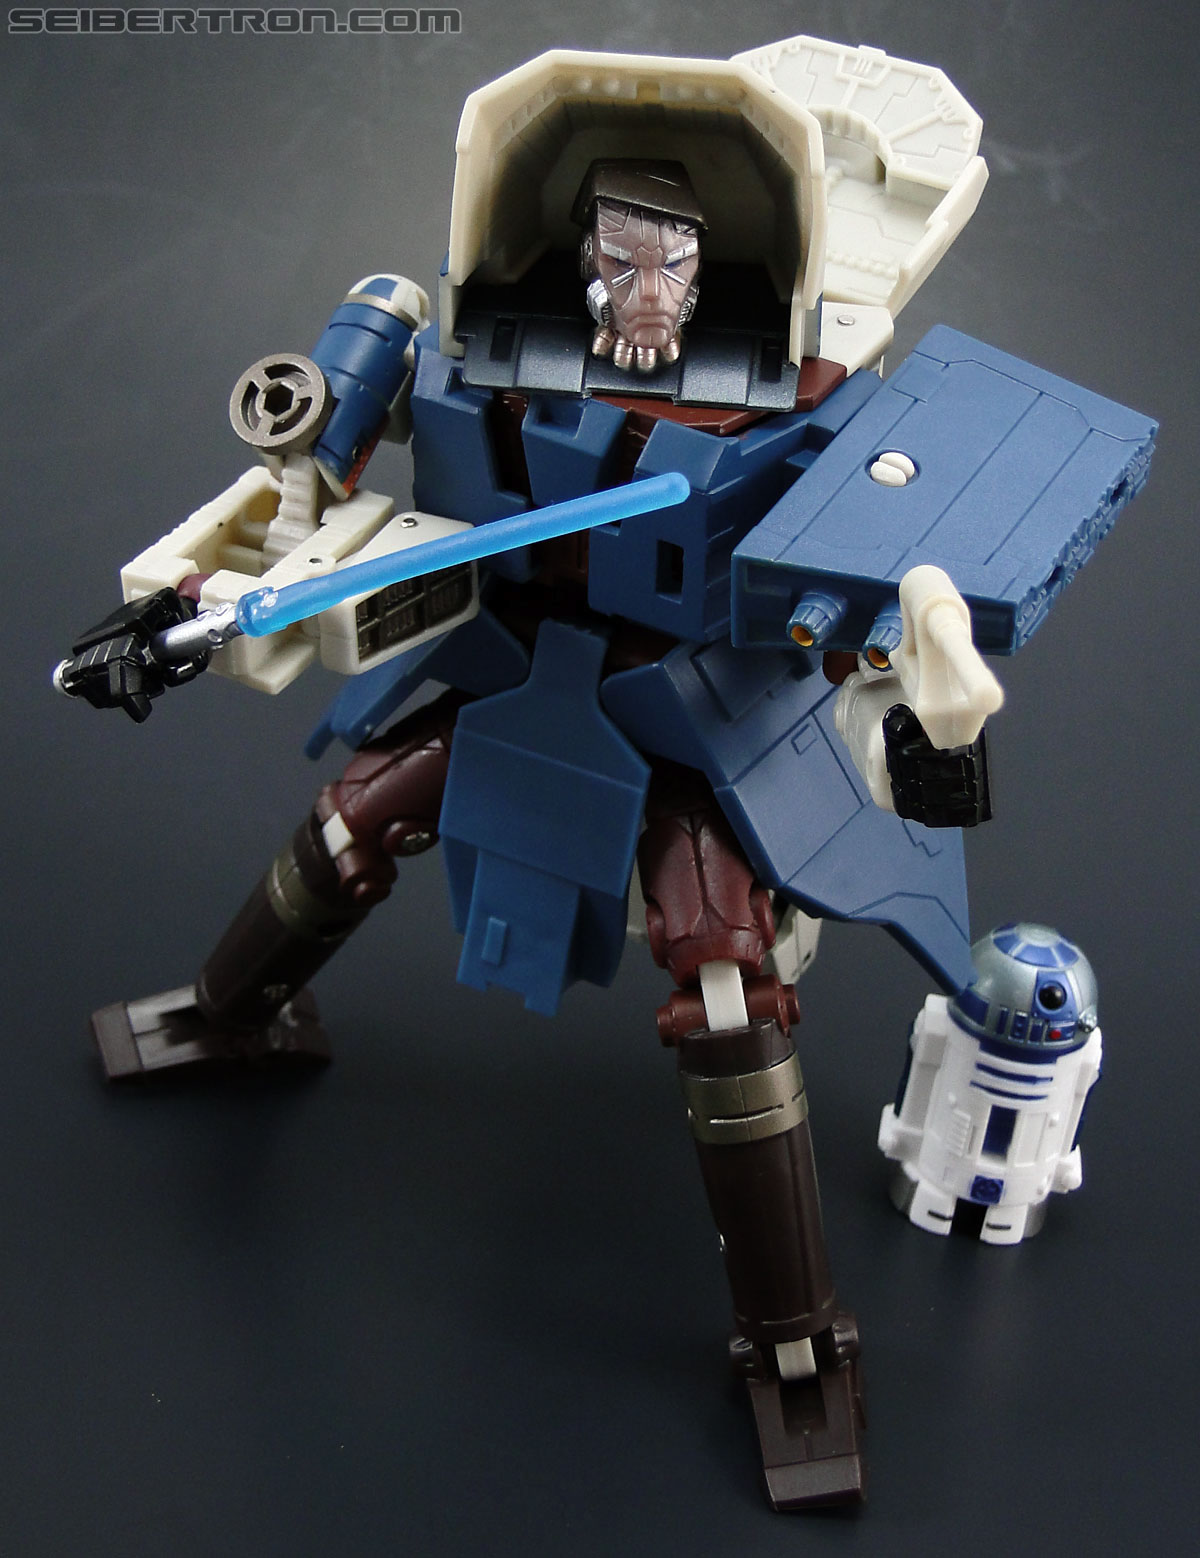 Star Wars Transformers Anakin Skywalker (The Twilight) (Image #84 of 106)